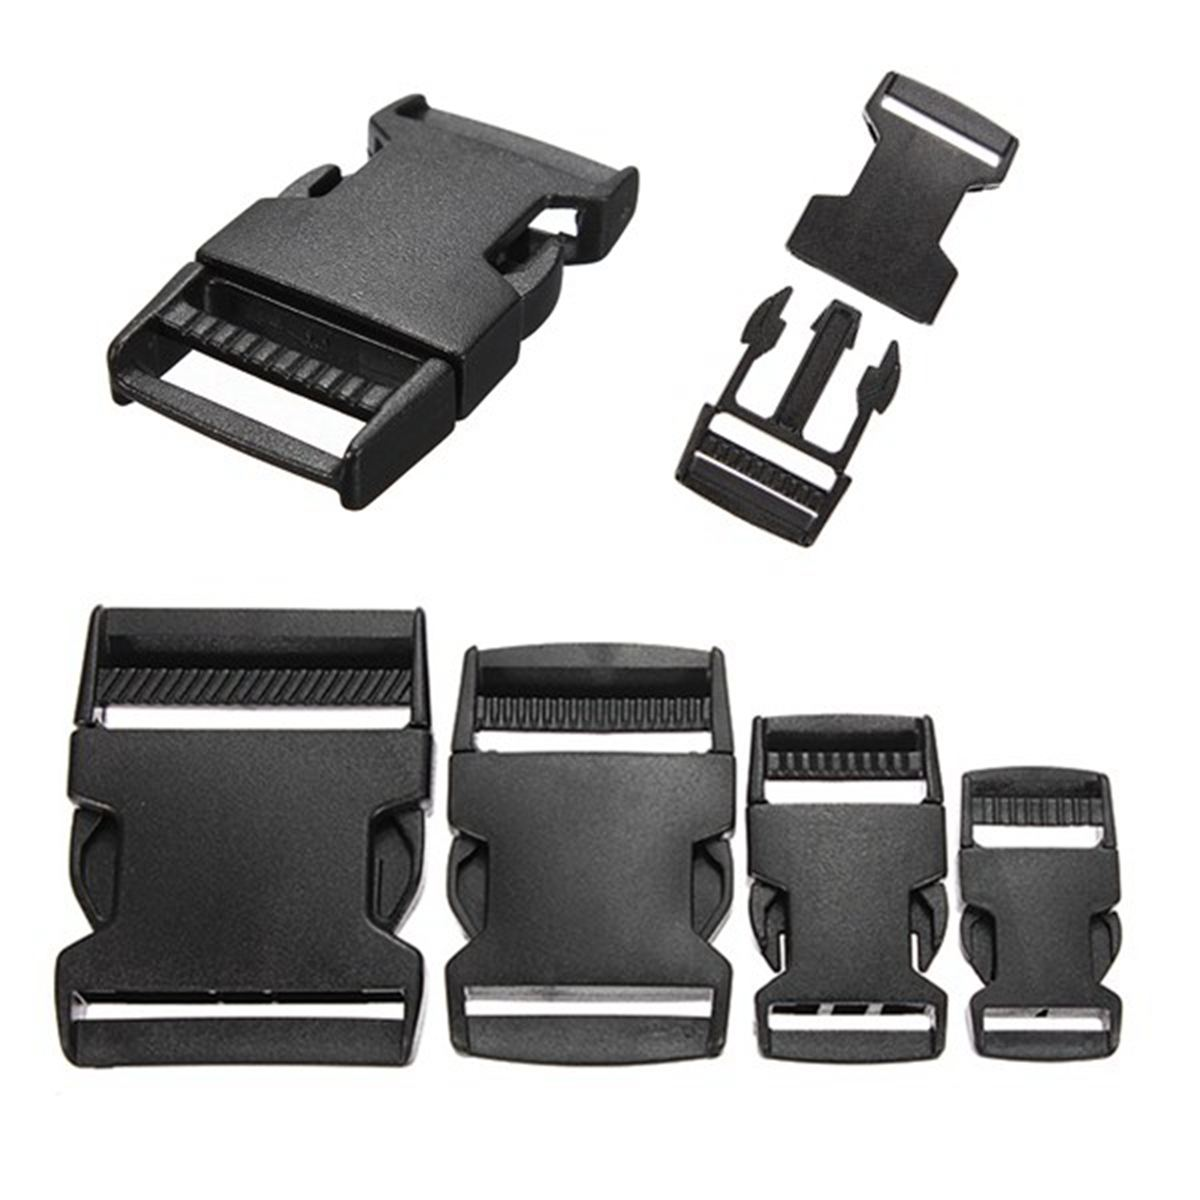 5pcs 20/25/40/50mm Black Plastic Side Quick Release Clasp Buckles Webbing Strap Safety Buckle Accessories Release Clasps